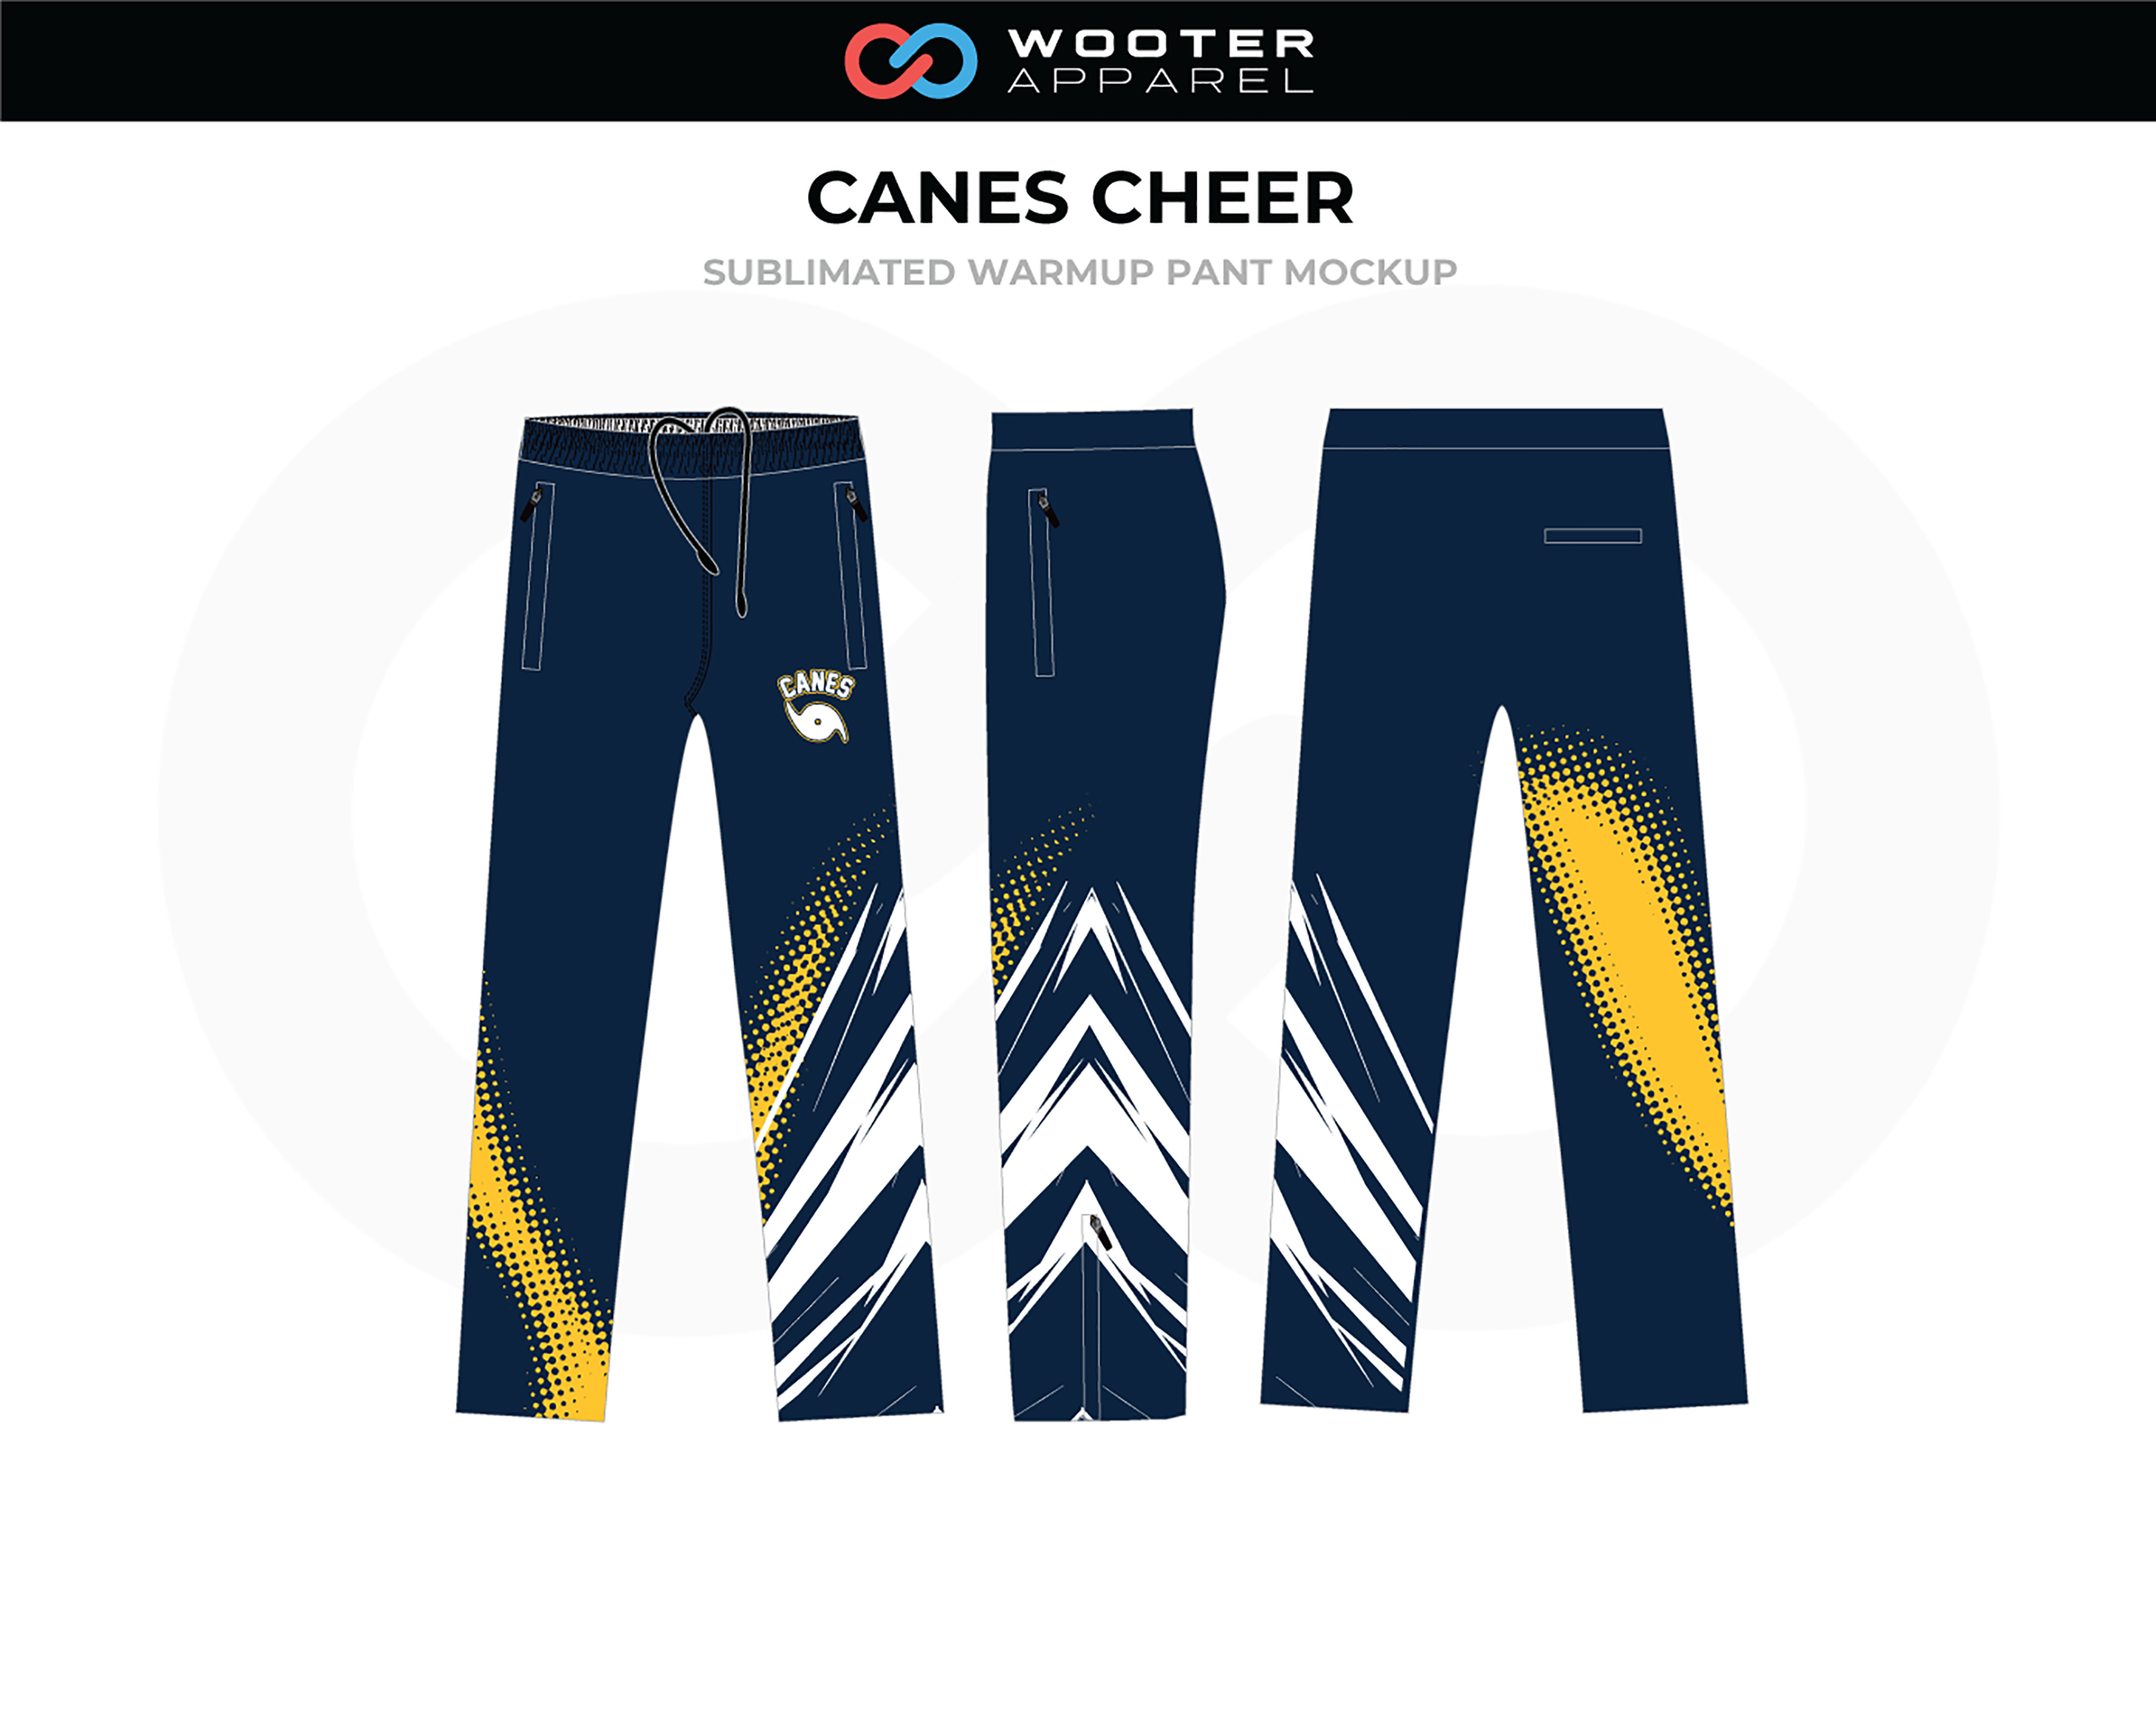 CANES Blue White Yellow Cheer Warmup Pants